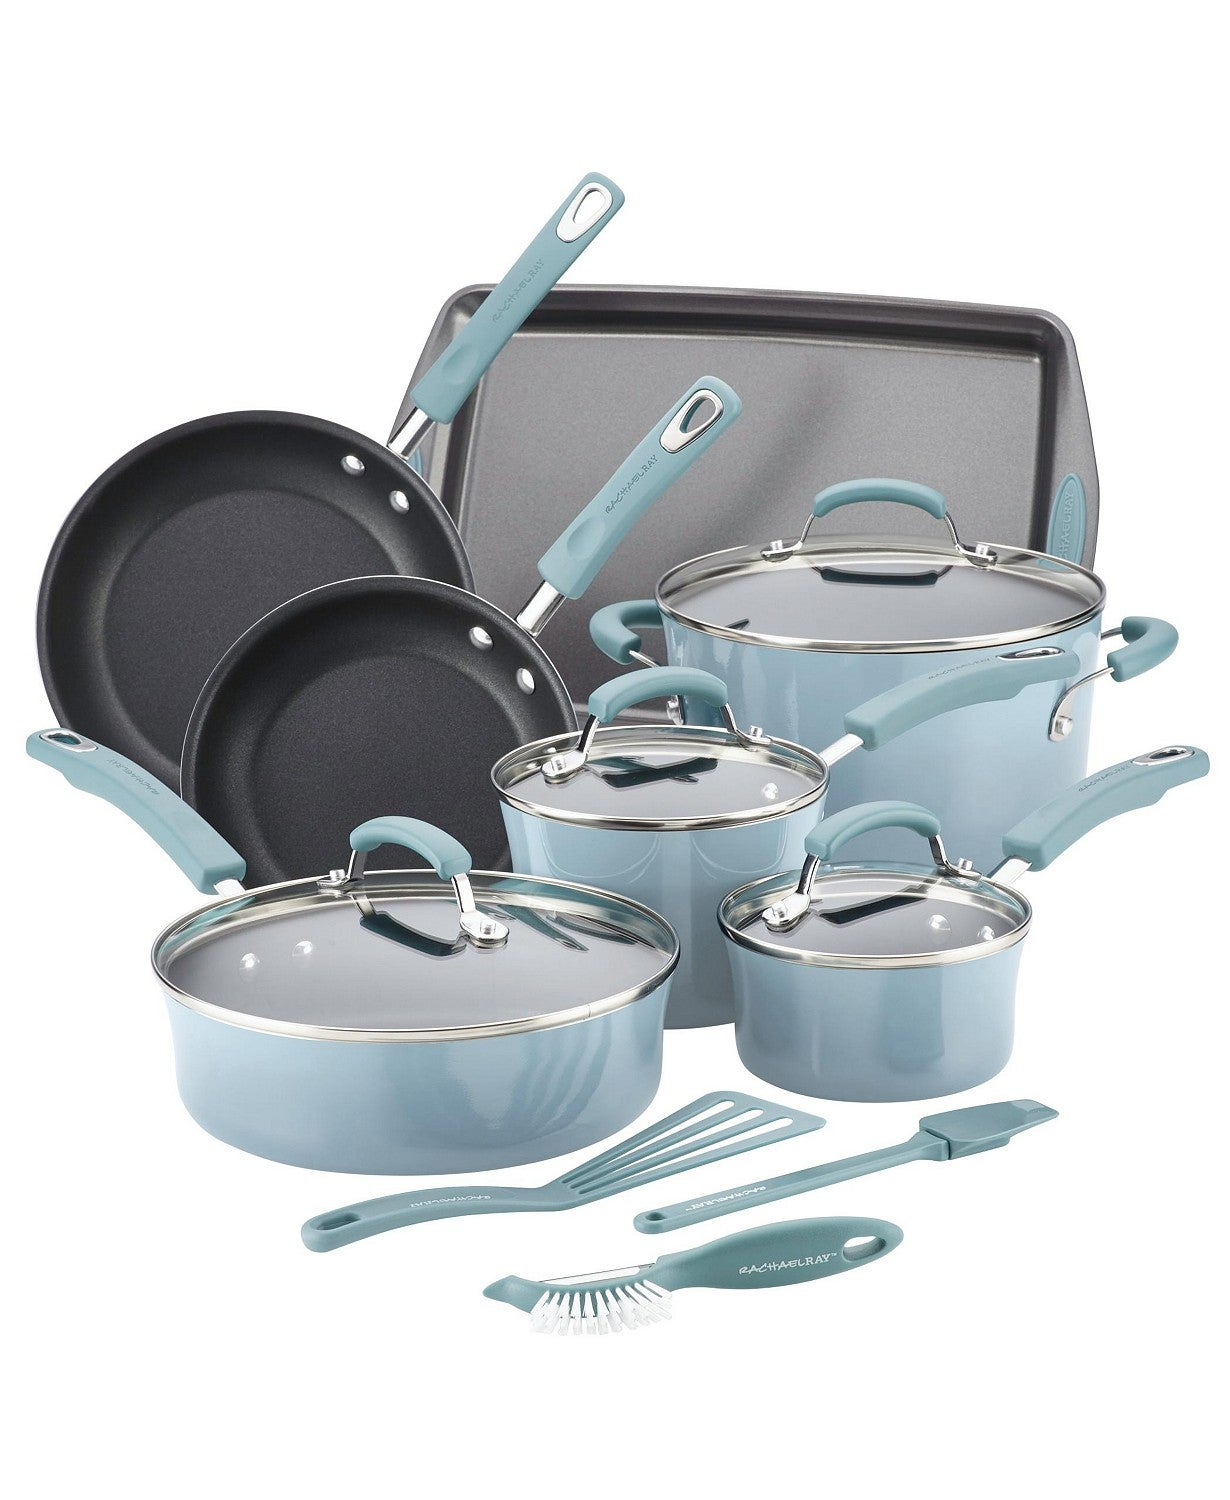 Rachael Ray 14-Pc. Nonstick Cookware Set